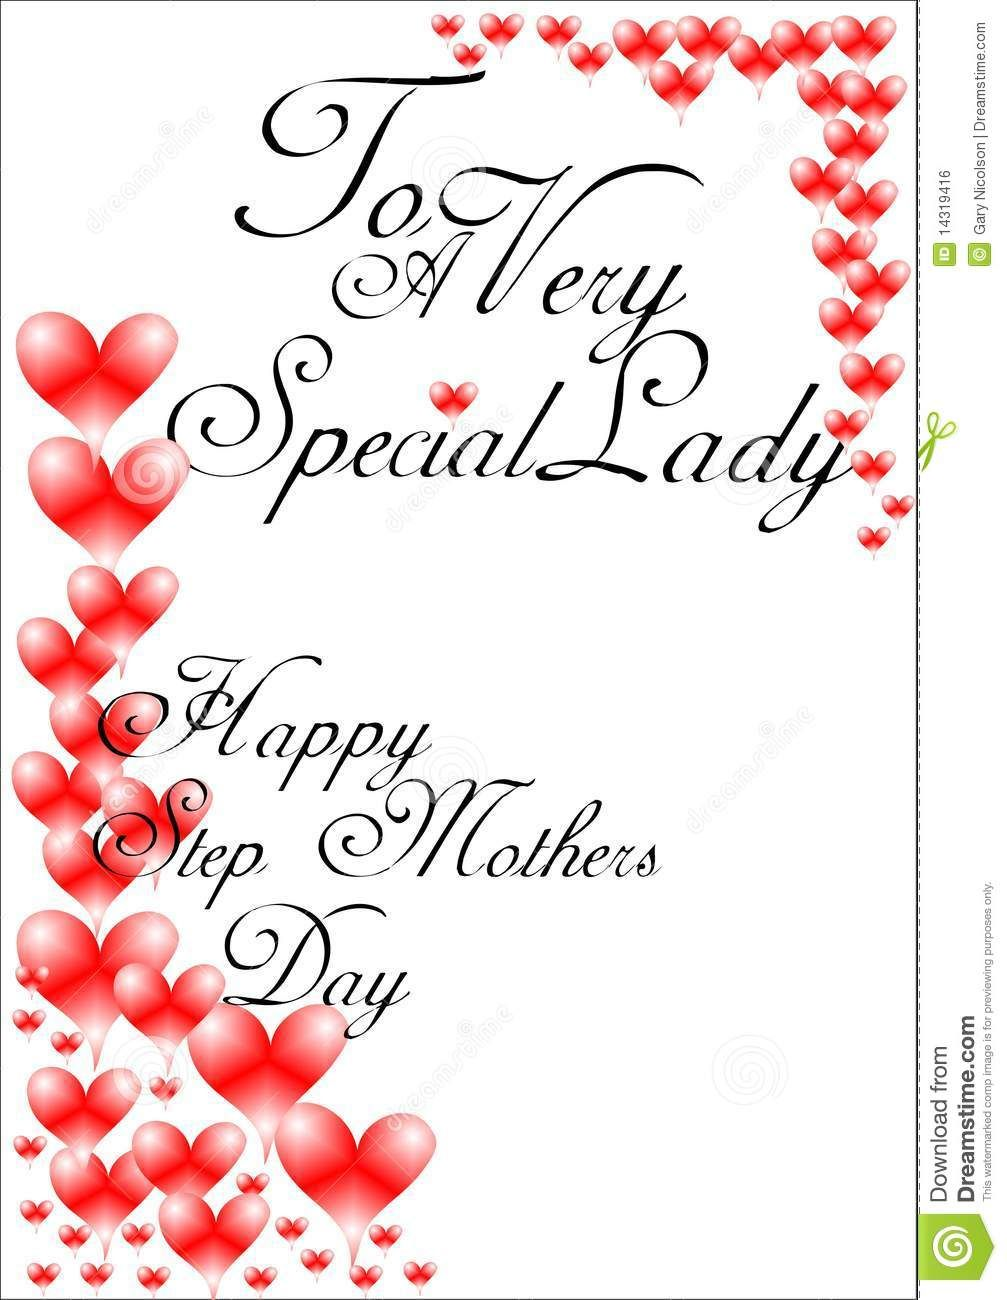 picture Happy Step Mothers Day Images happy stepmothers day happy